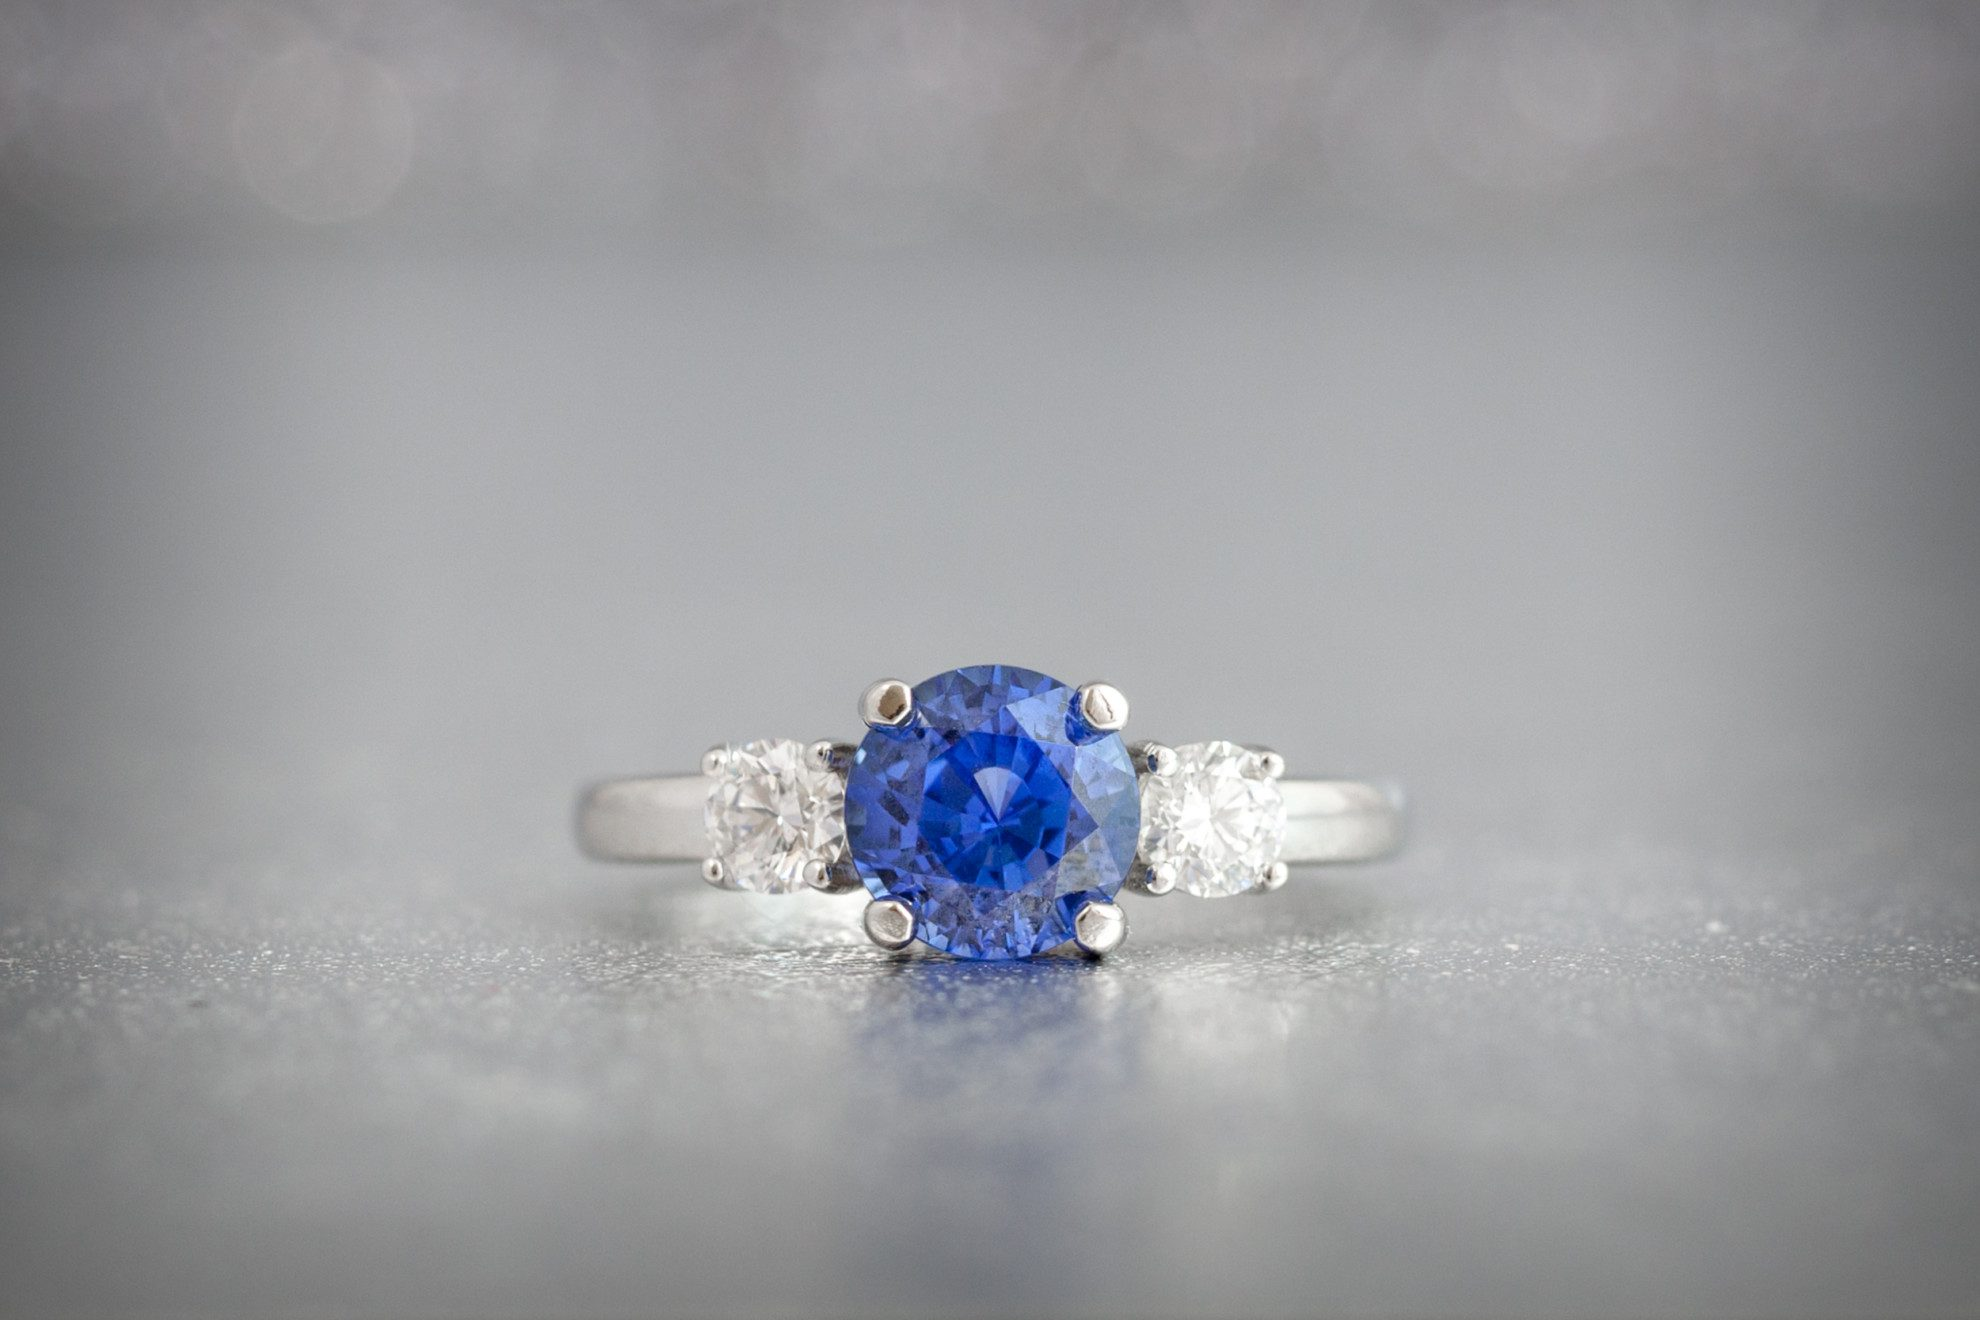 light awesome ring mens full diamond of size engagement wedding blue luxury home rings idea